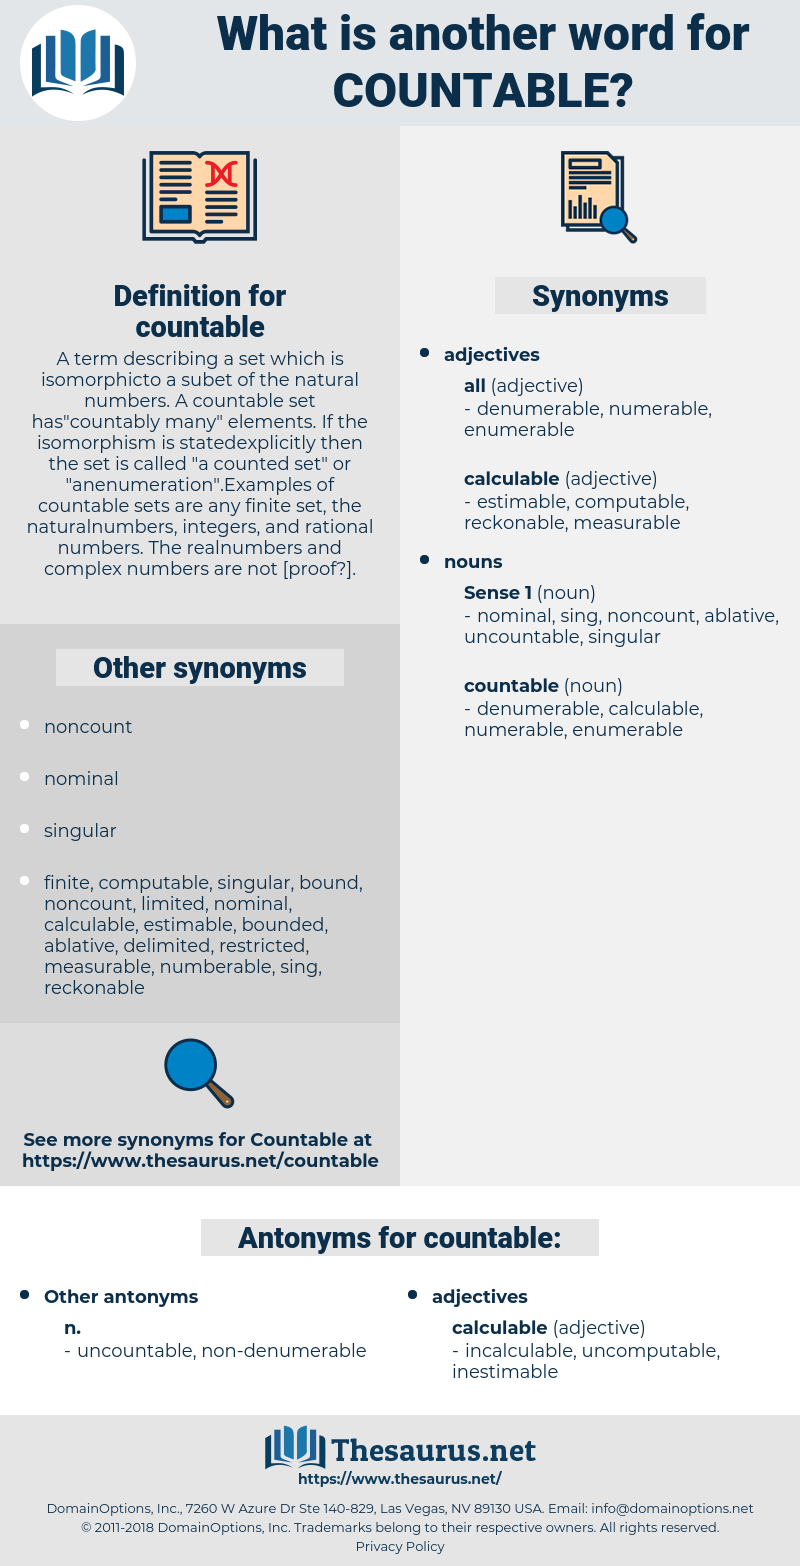 countable, synonym countable, another word for countable, words like countable, thesaurus countable